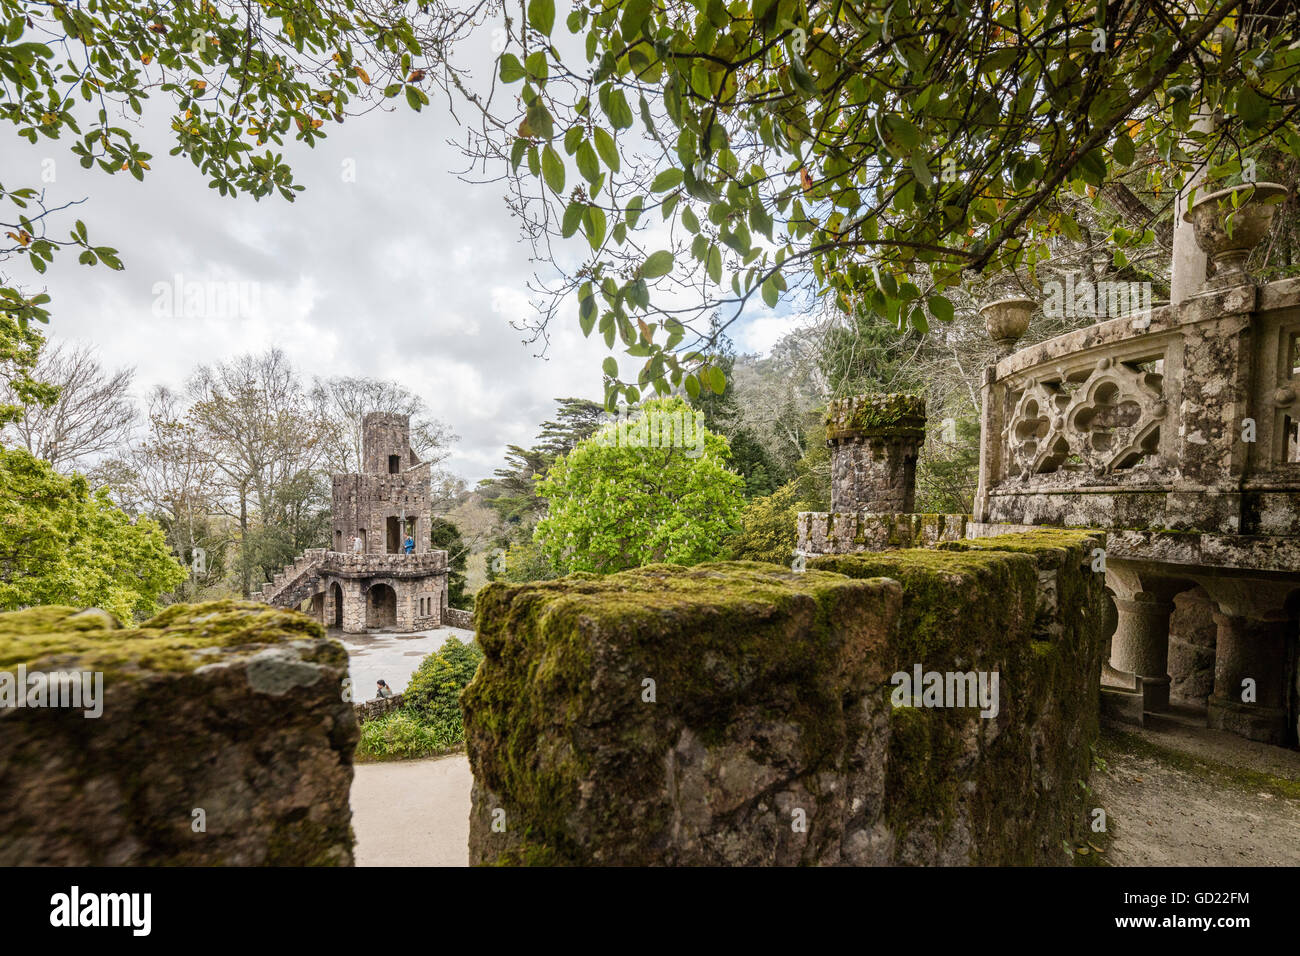 Mystical constructions of Romanesque Gothic and Renaissance style inside the park Quinta da Regaleira, Sintra, Portugal, - Stock Image